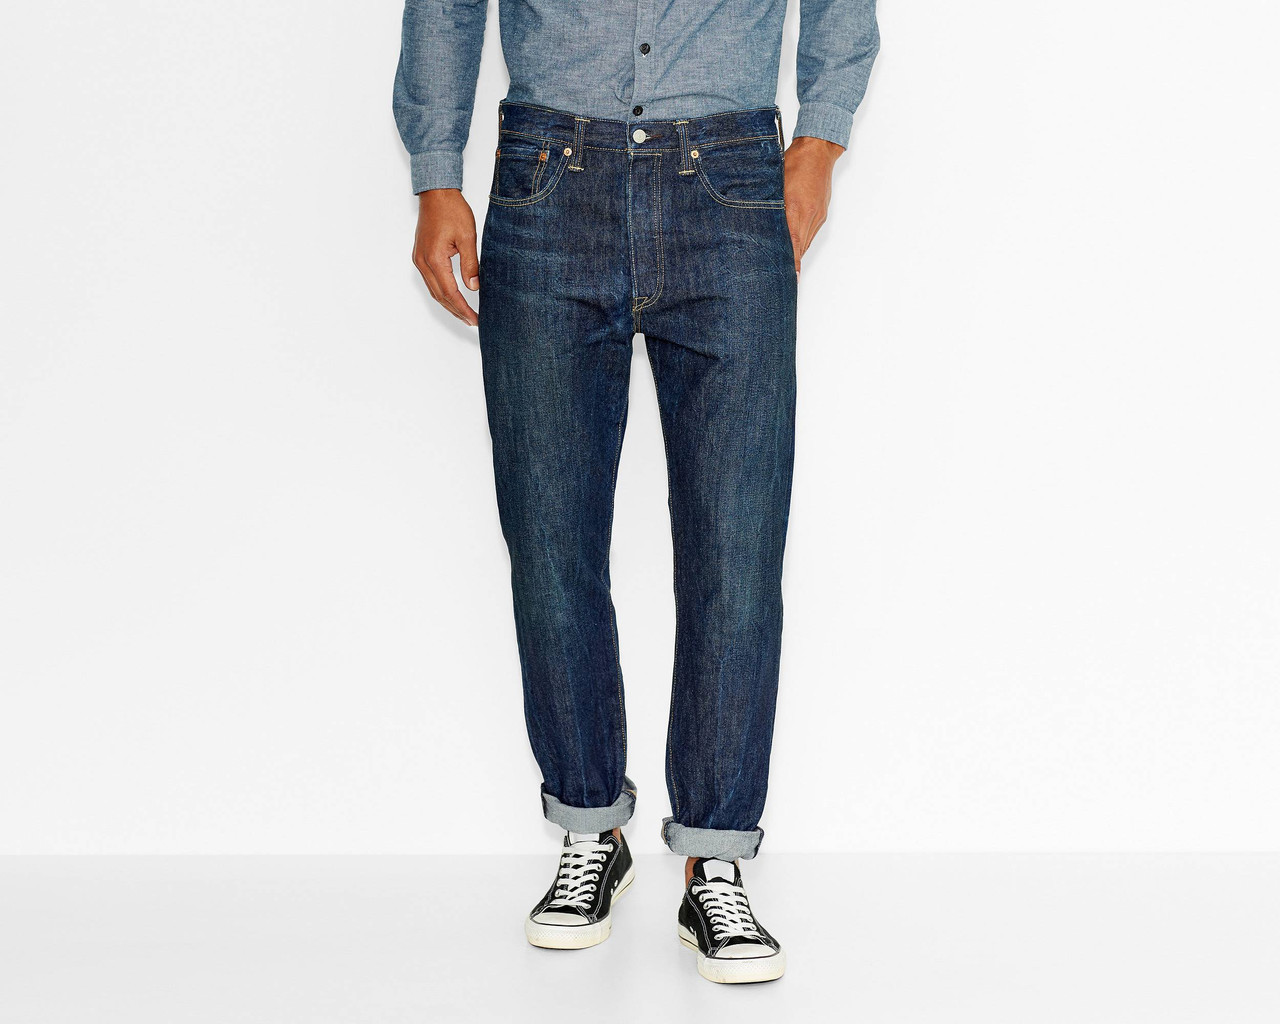 Джинсы Levi's 501 CT, Long Ridge, 38W32L, 181730030